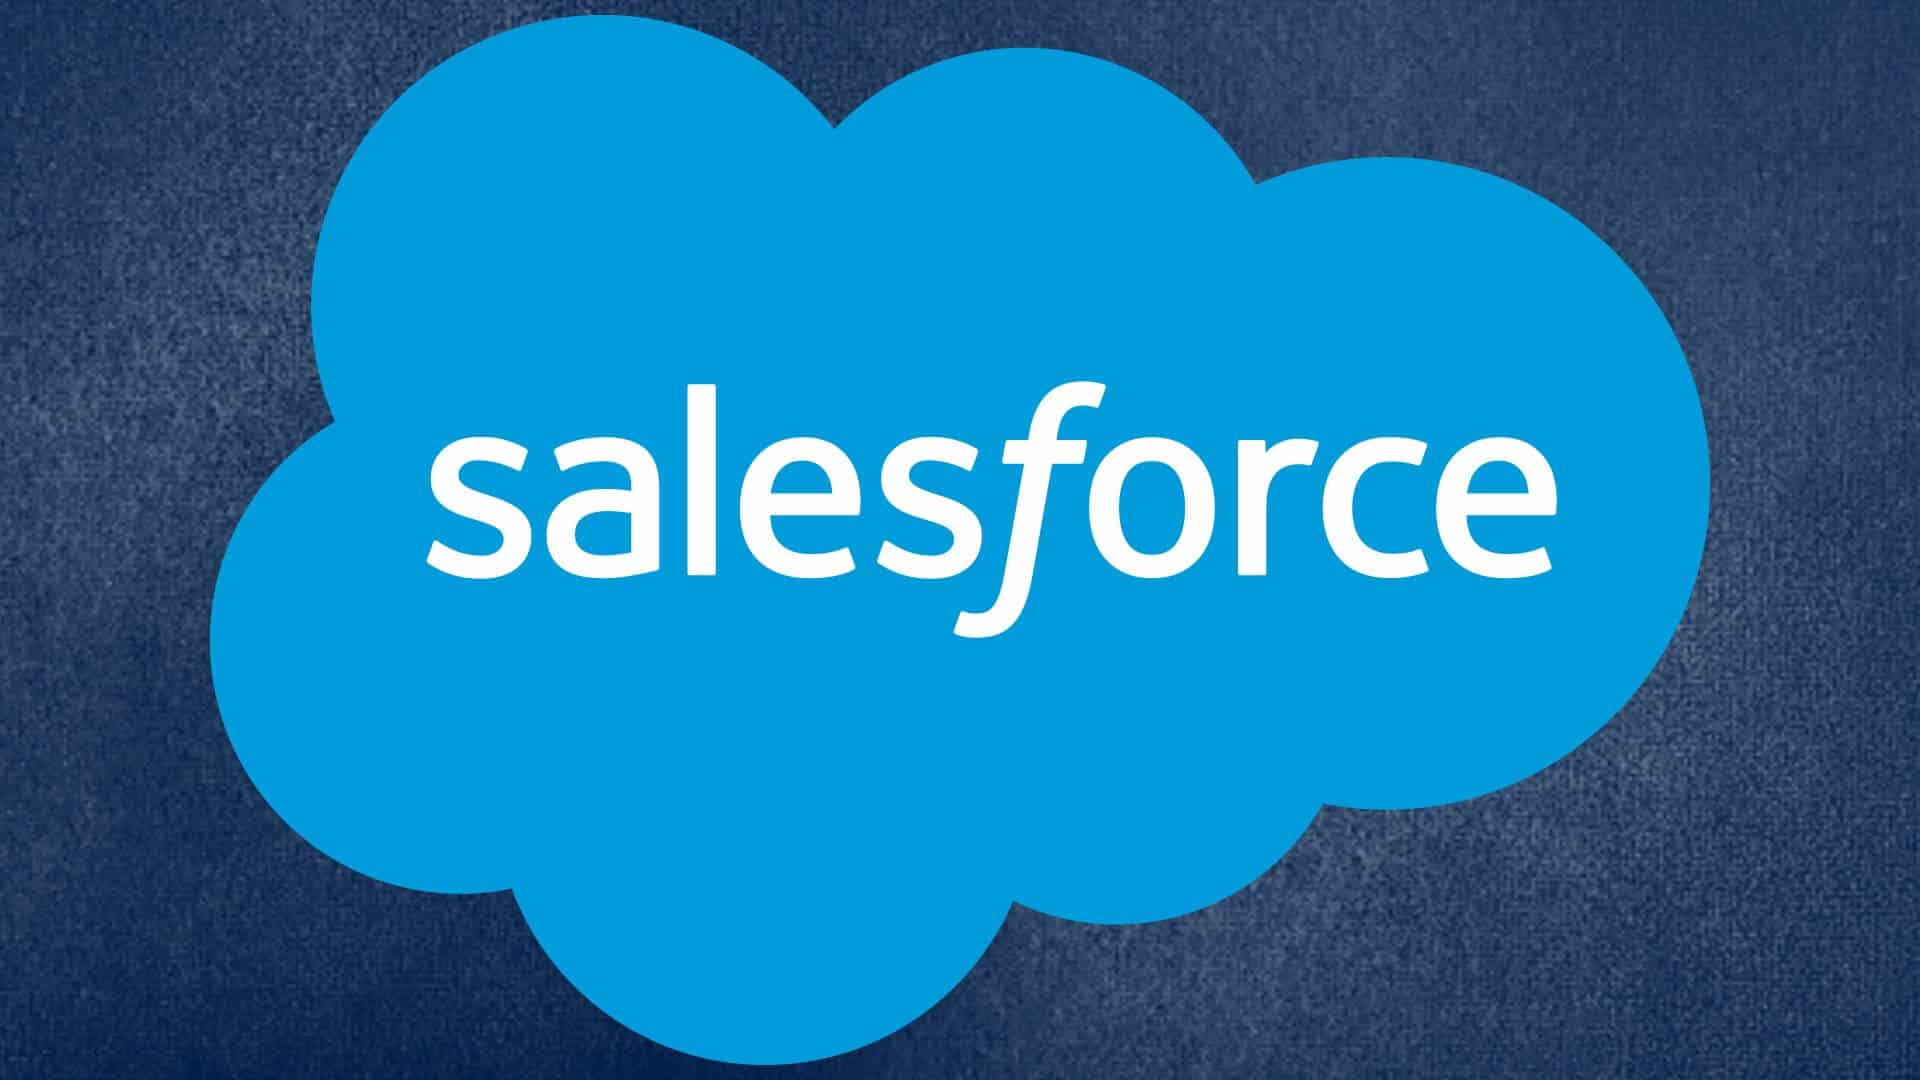 Salesforce Launches Blockchain Platform for Businesses